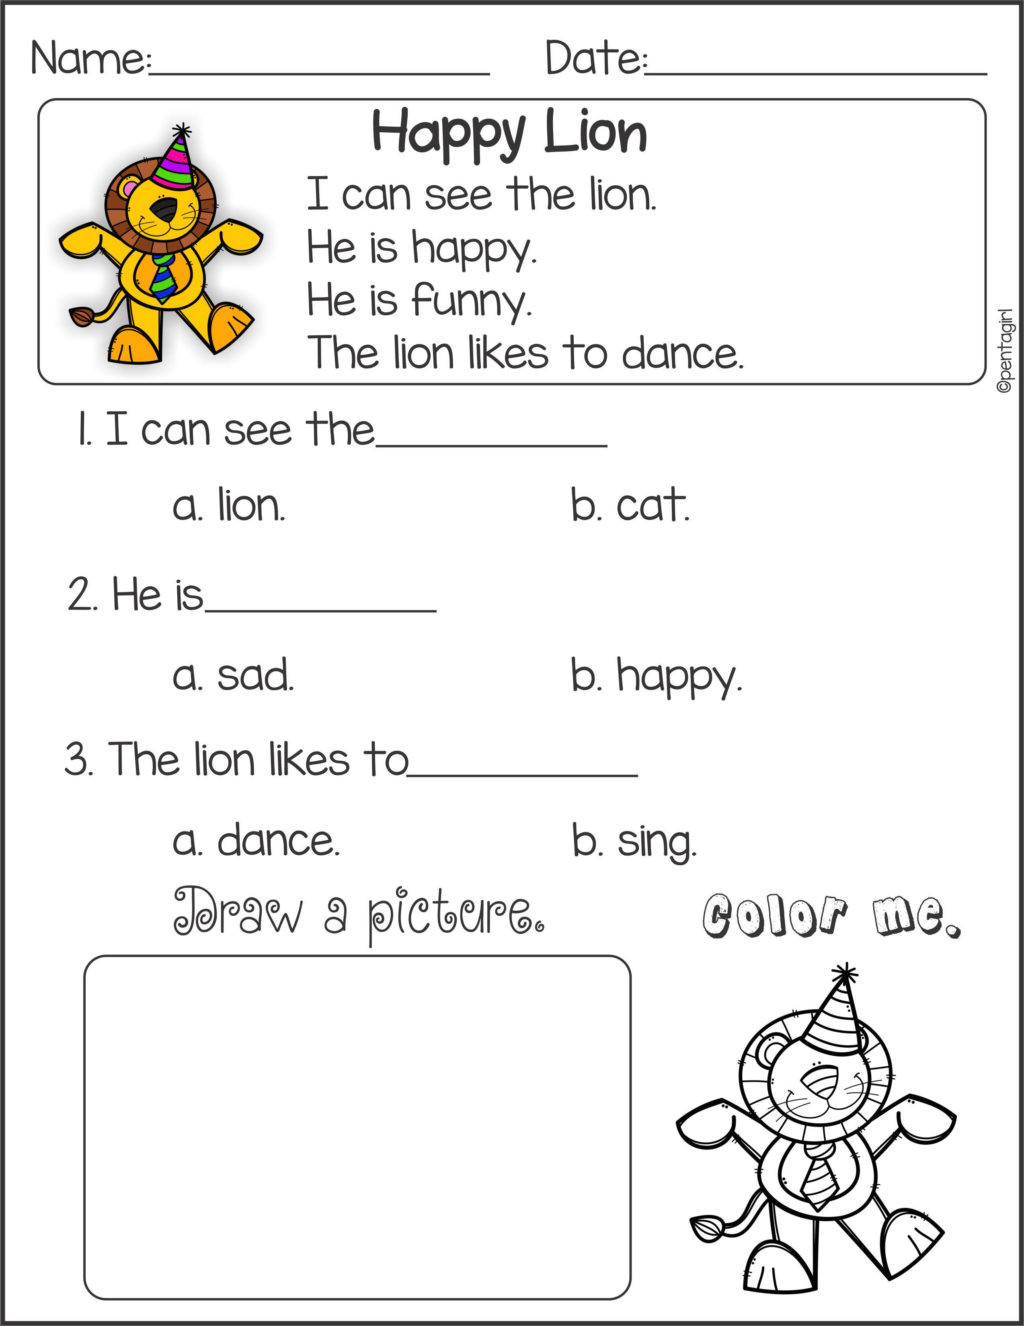 Sequencing Worksheets 2nd Grade Worksheet Free Third Grade Reading Worksheets to Print for